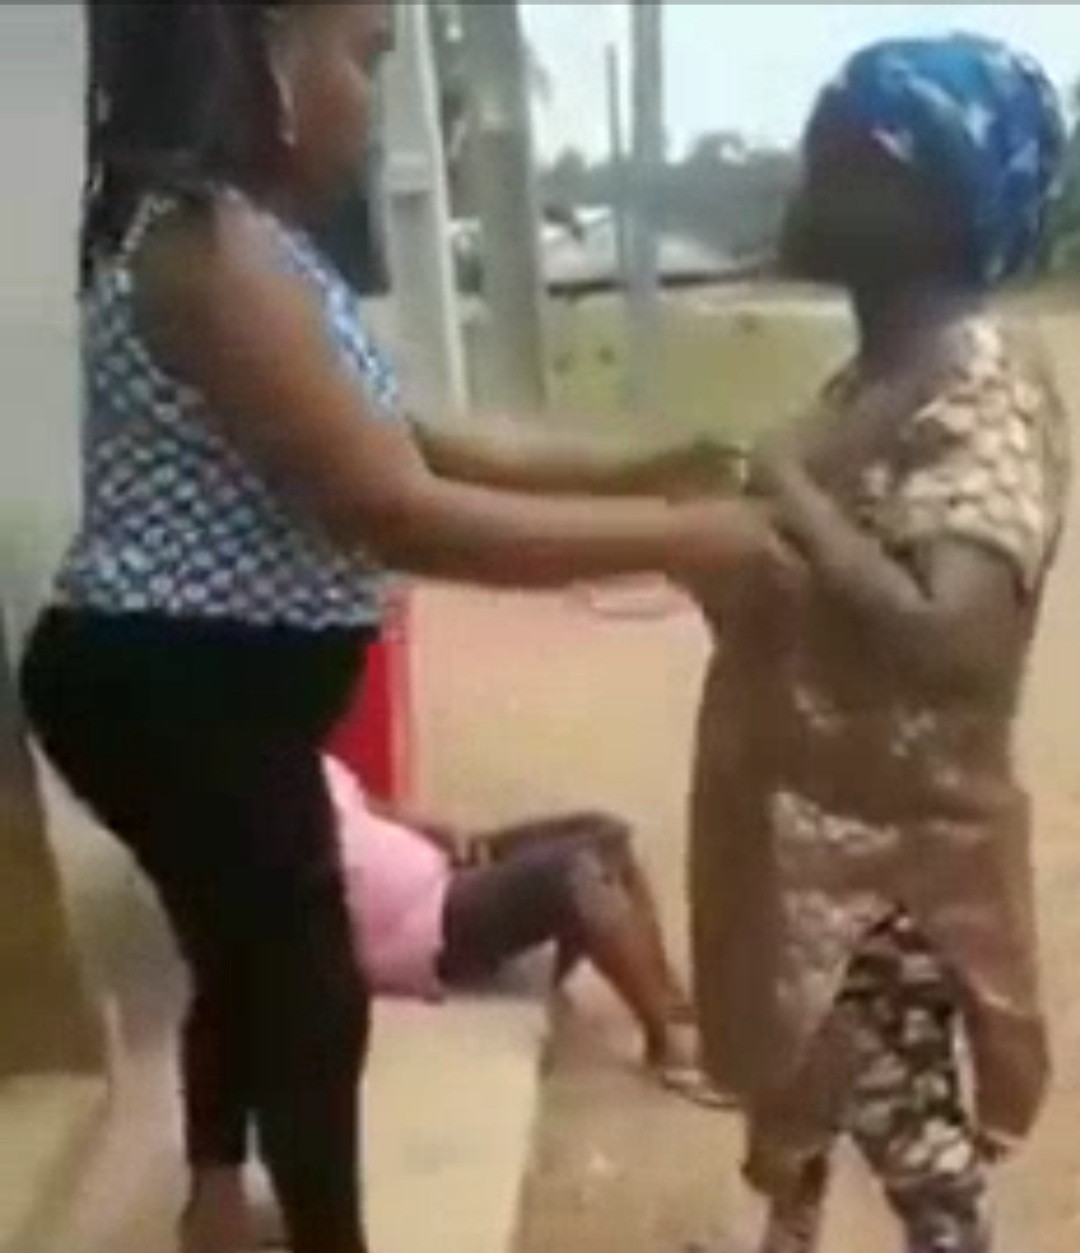 One of the farm attendants caught stealing eggs